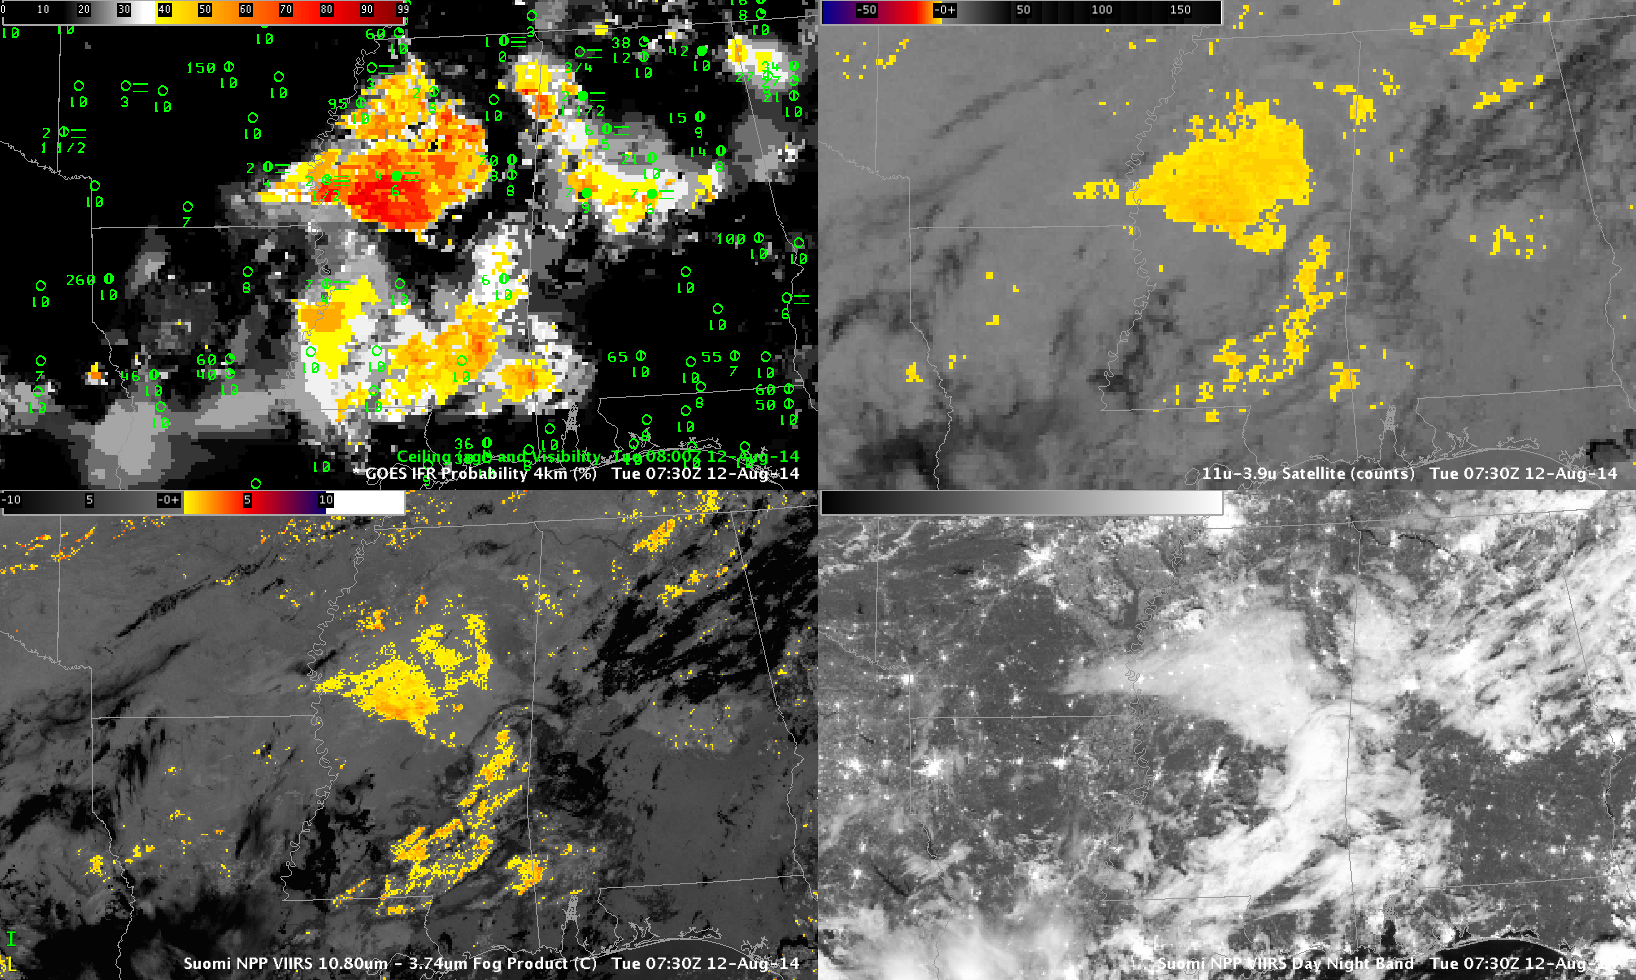 FourPanel_0730UTC_12August2014